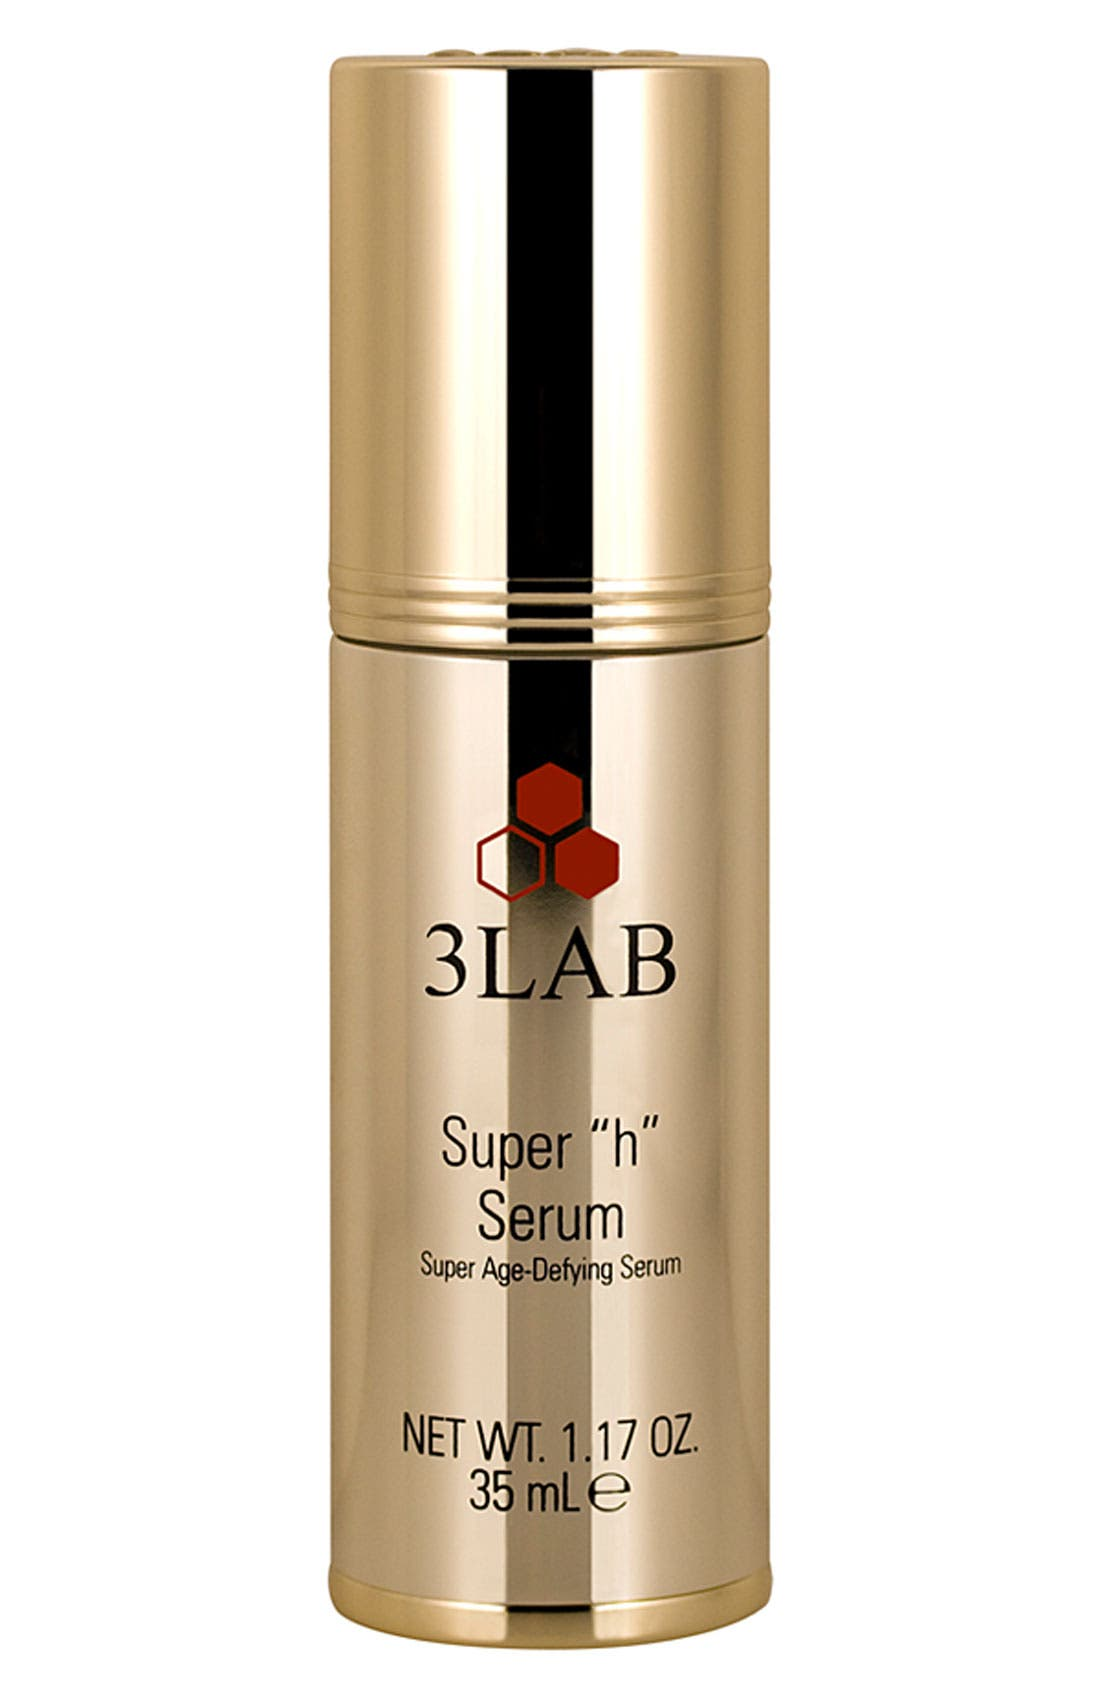 Super h Age-Defying Serum,                             Main thumbnail 1, color,                             NO COLOR